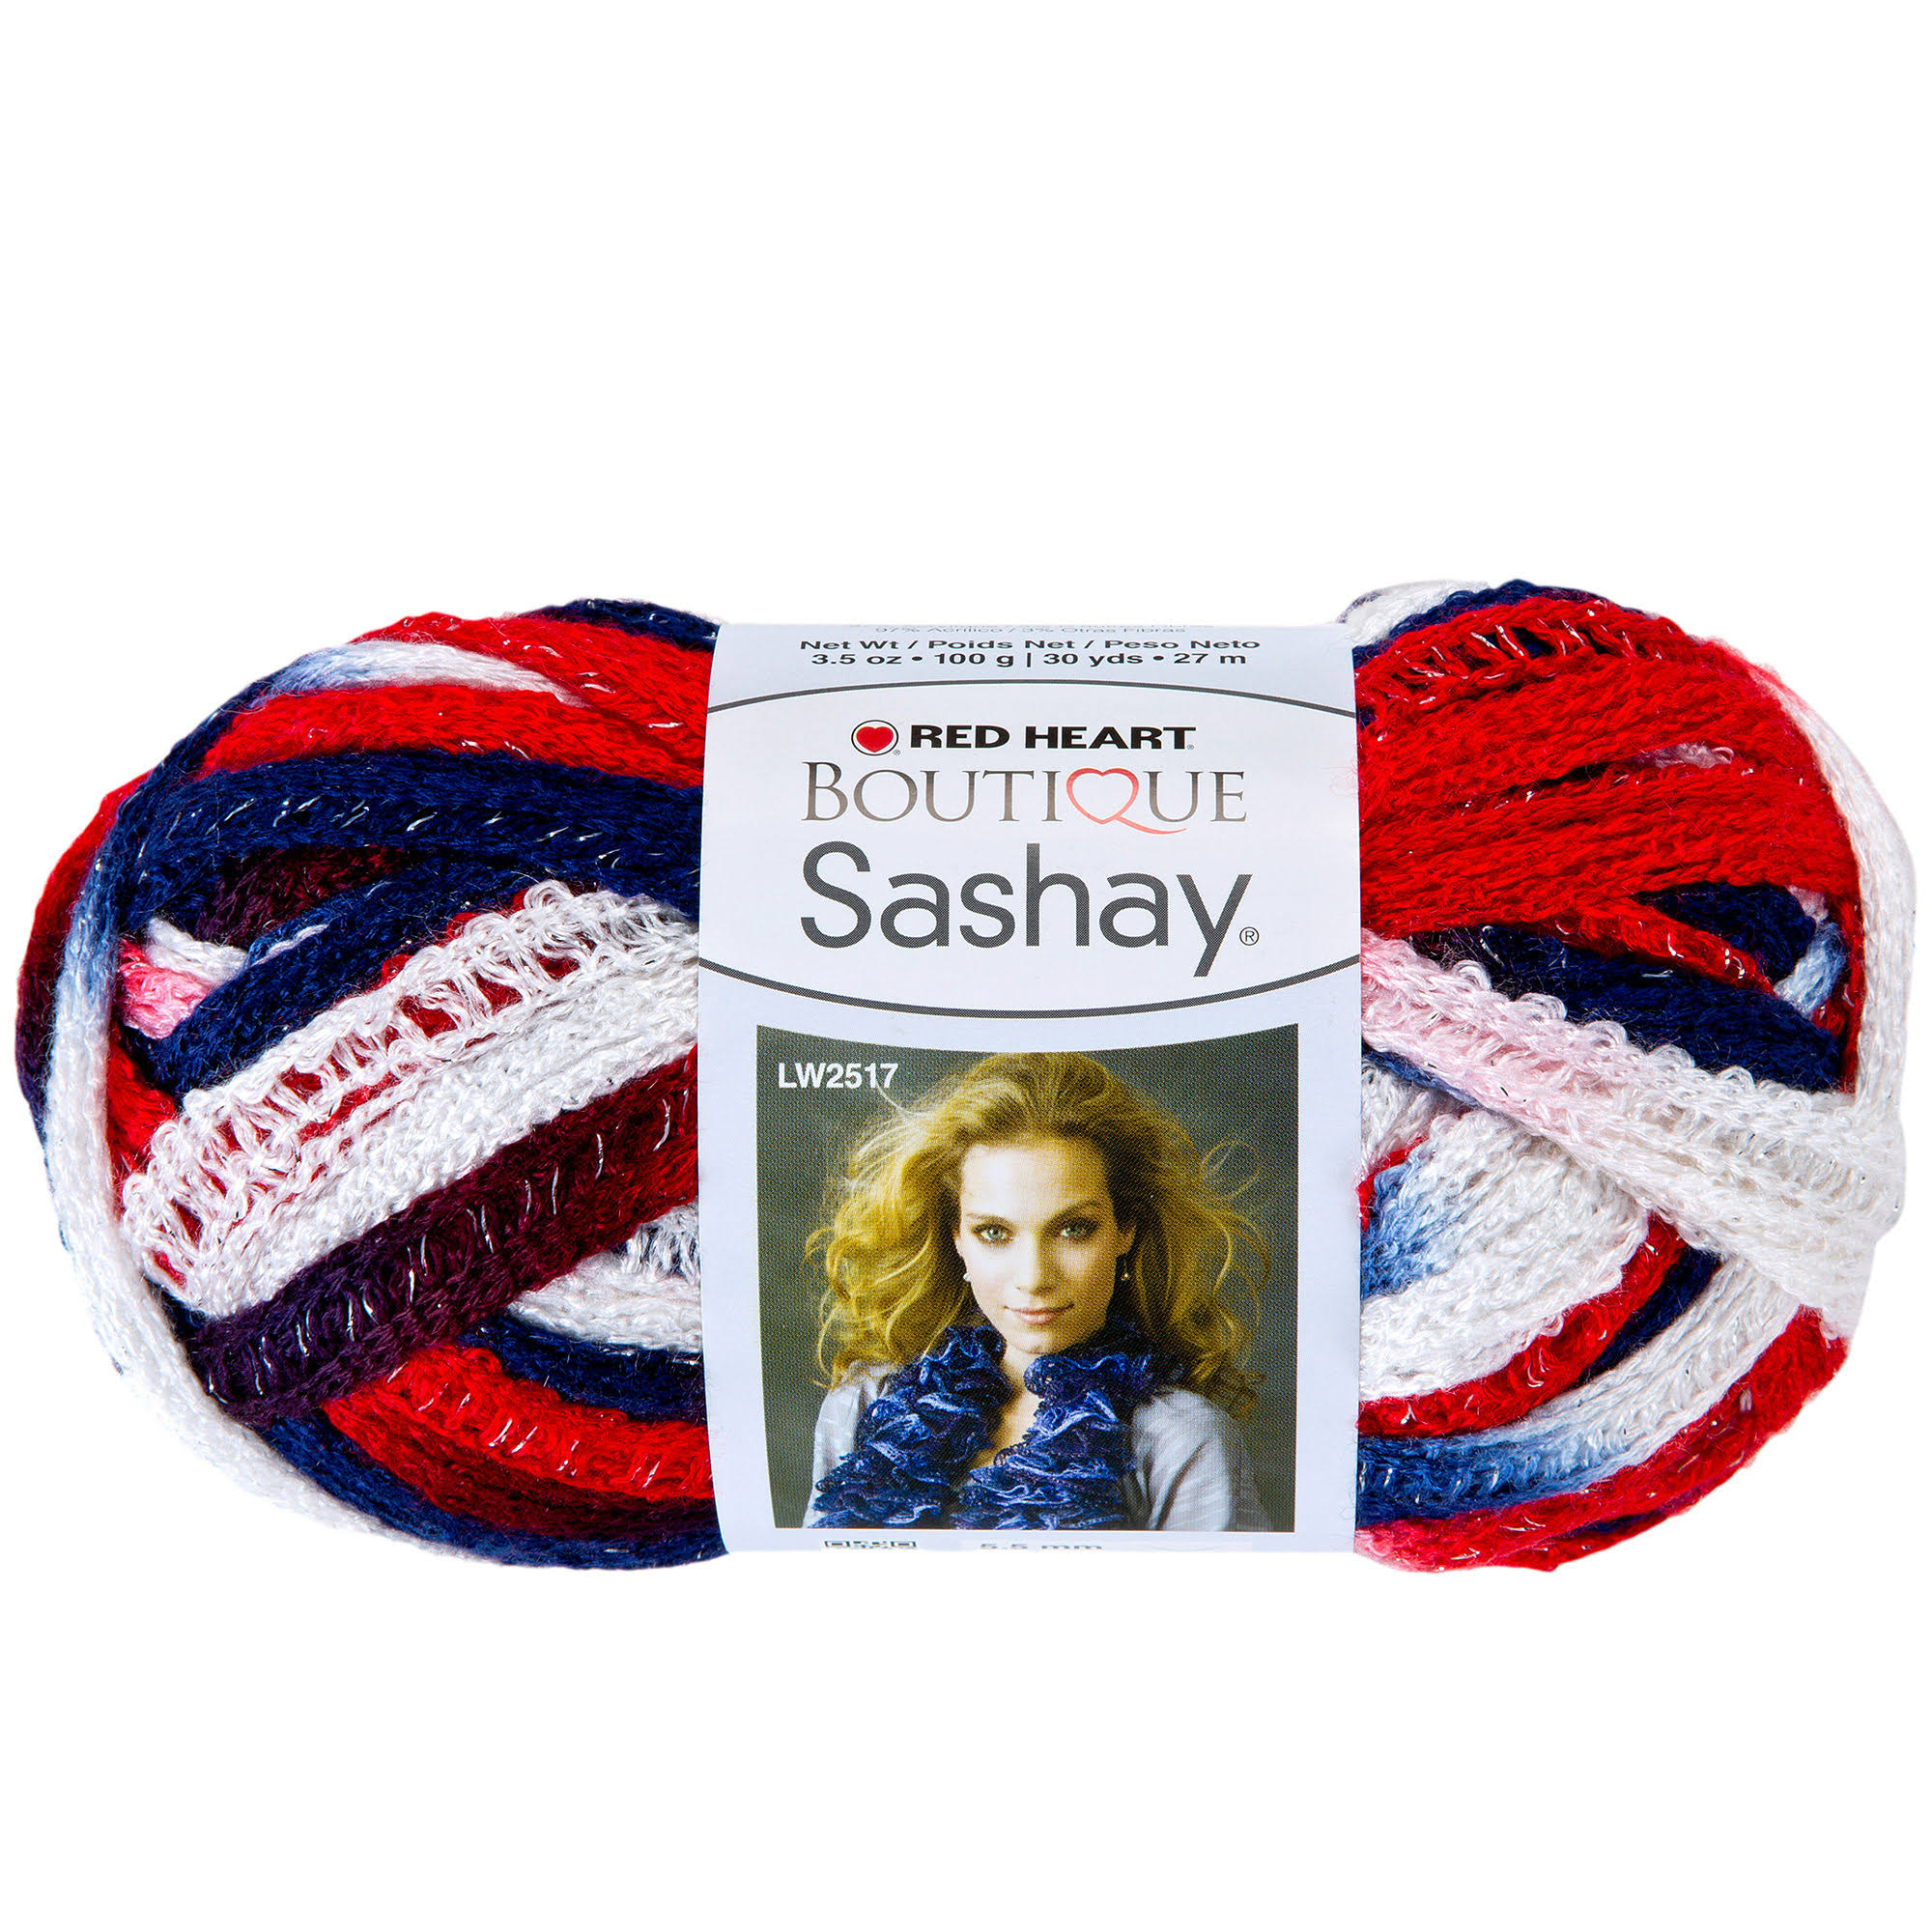 Red Heart Boutique Sashay Yarn - Patriotic